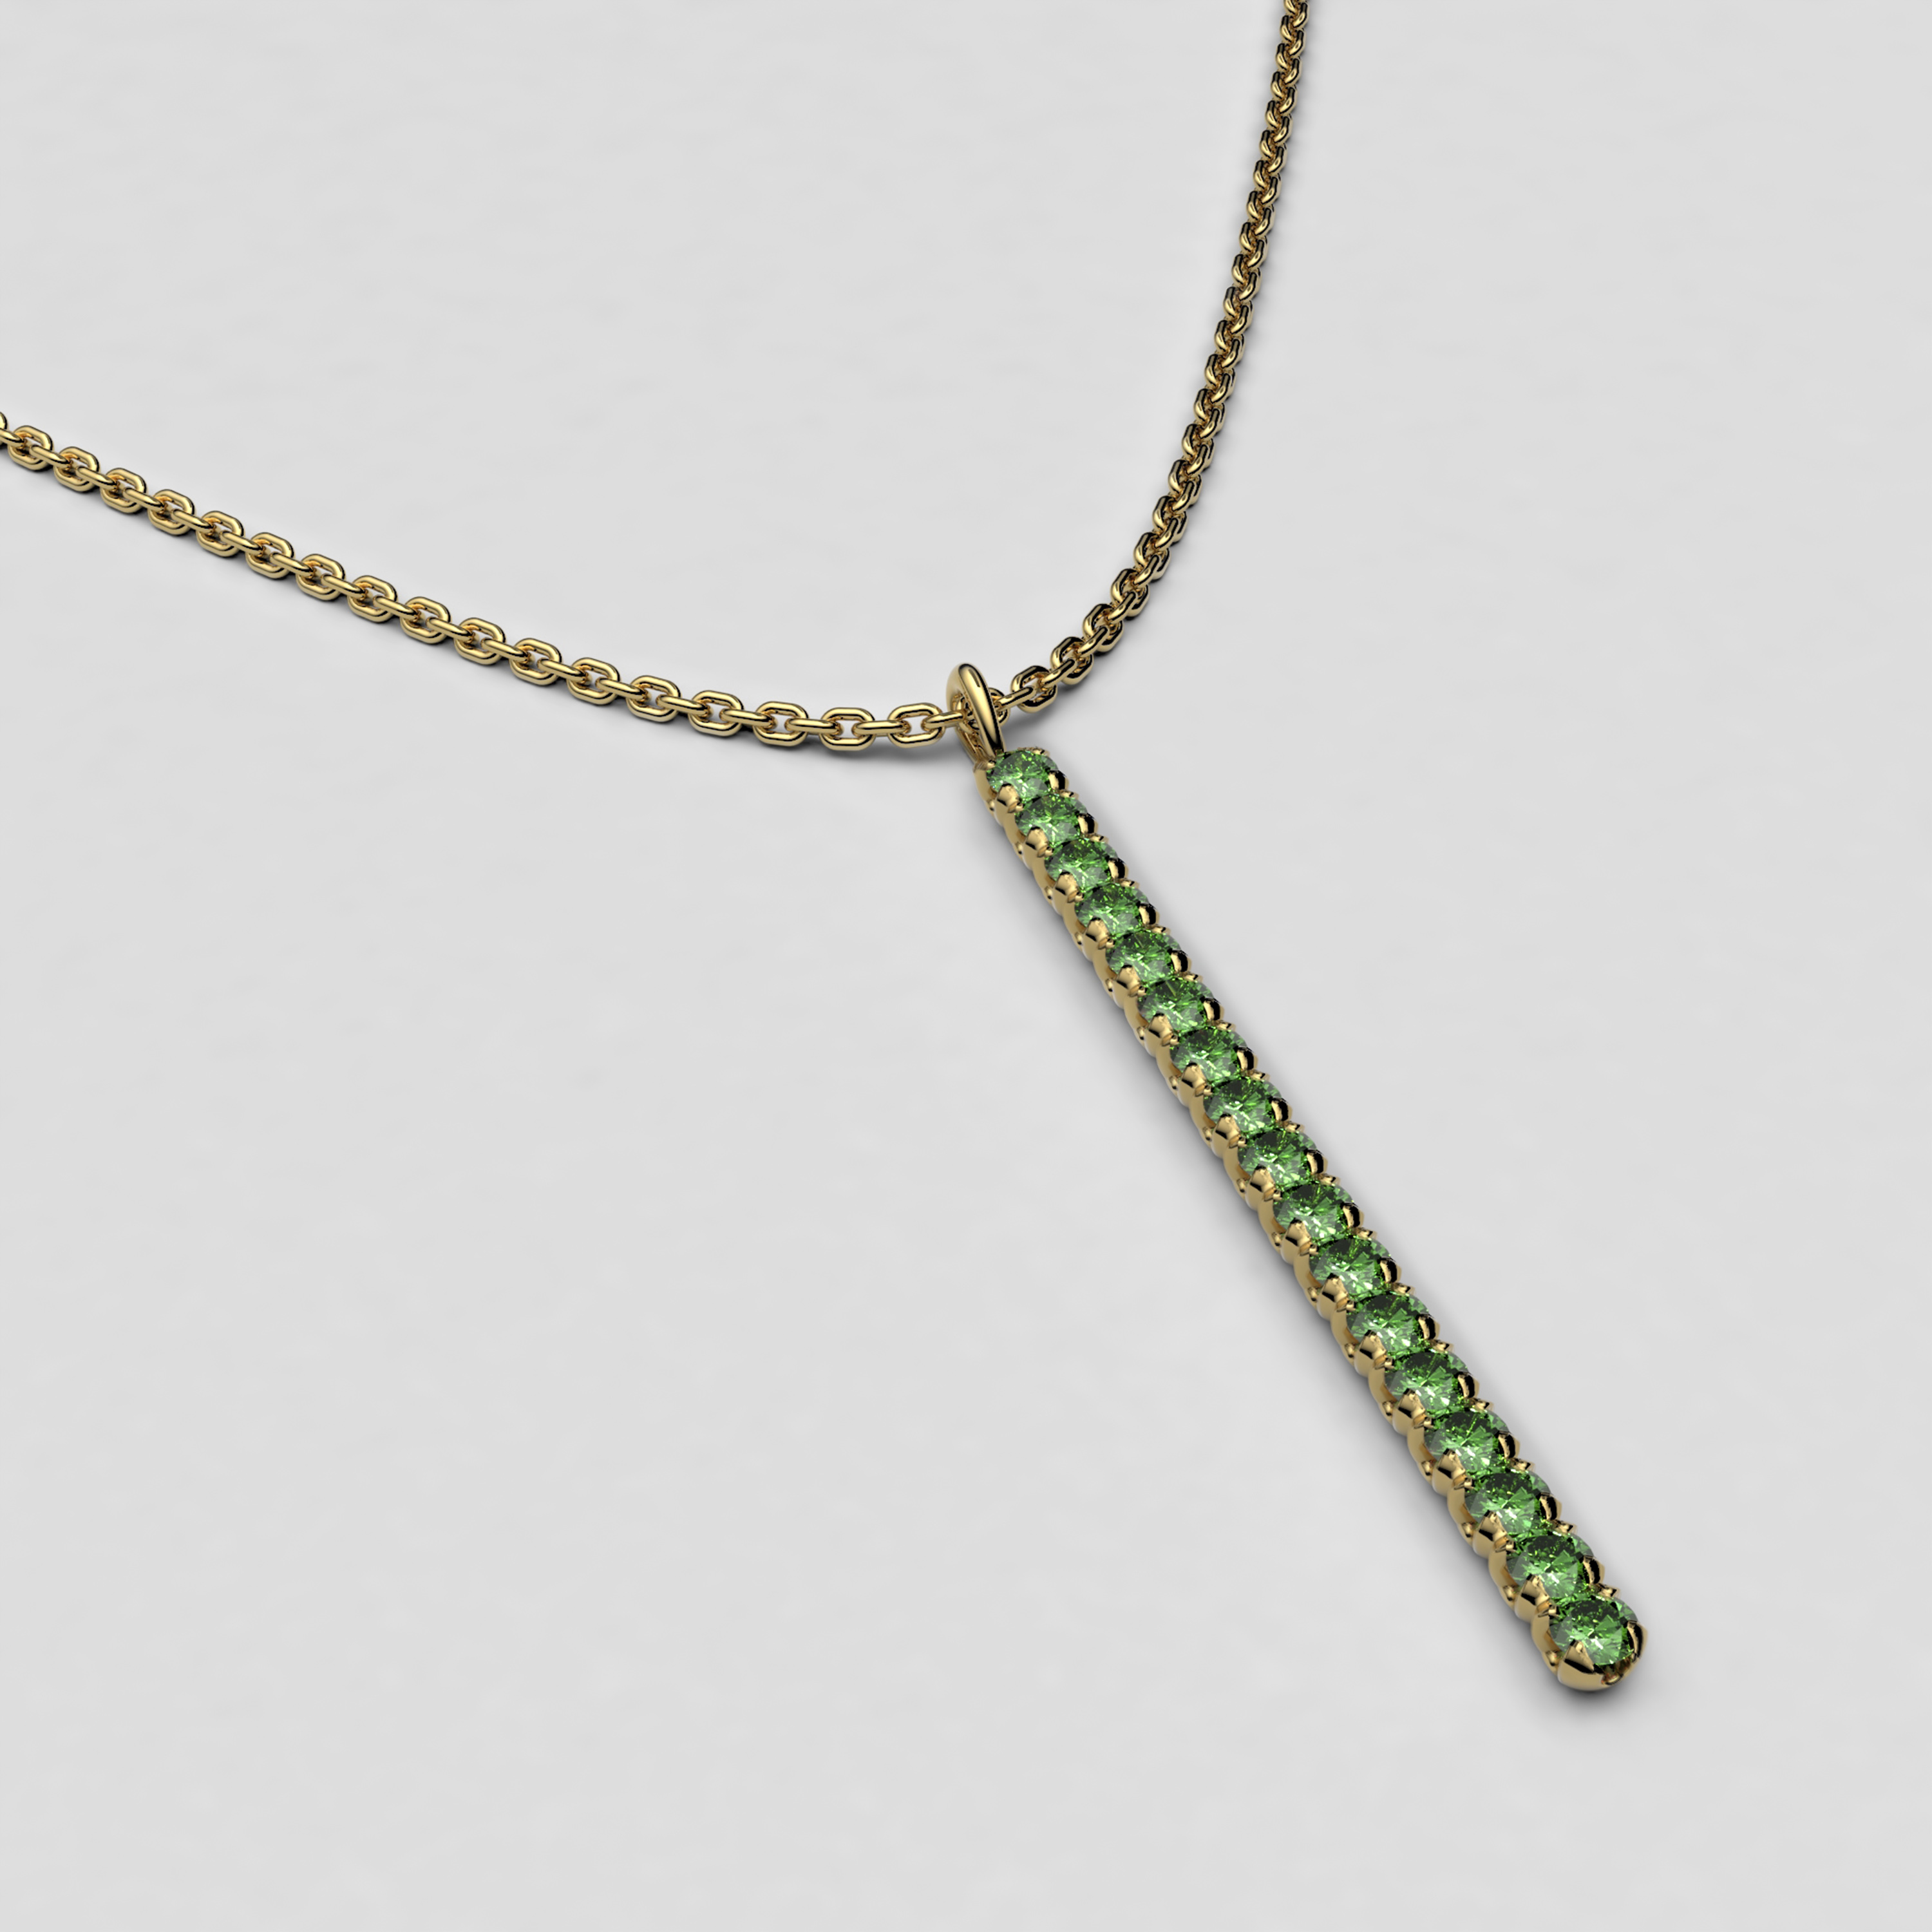 blossom necklace and long pendant  - tsavorite garnet and 18k yellow gold